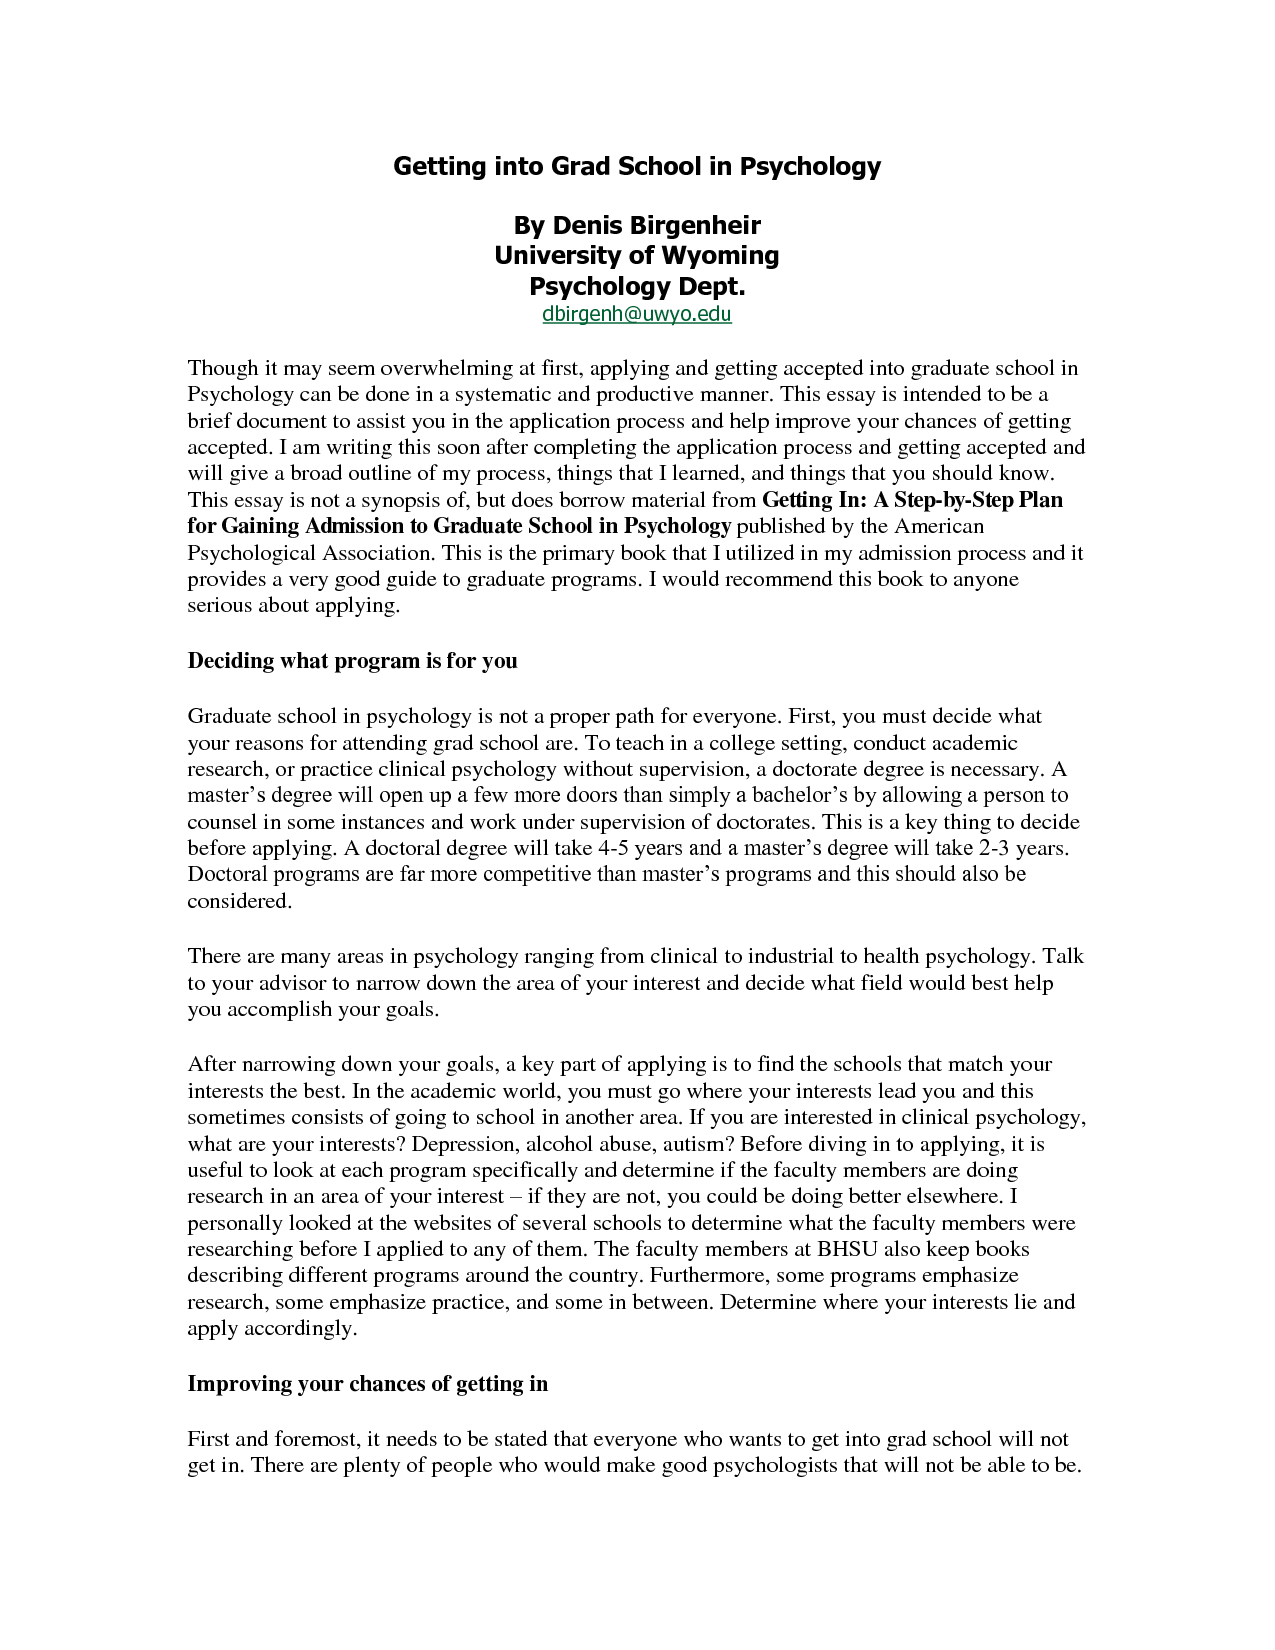 002 Graduation Essay Ydsmbeywi2 Excellent College Ideas Full